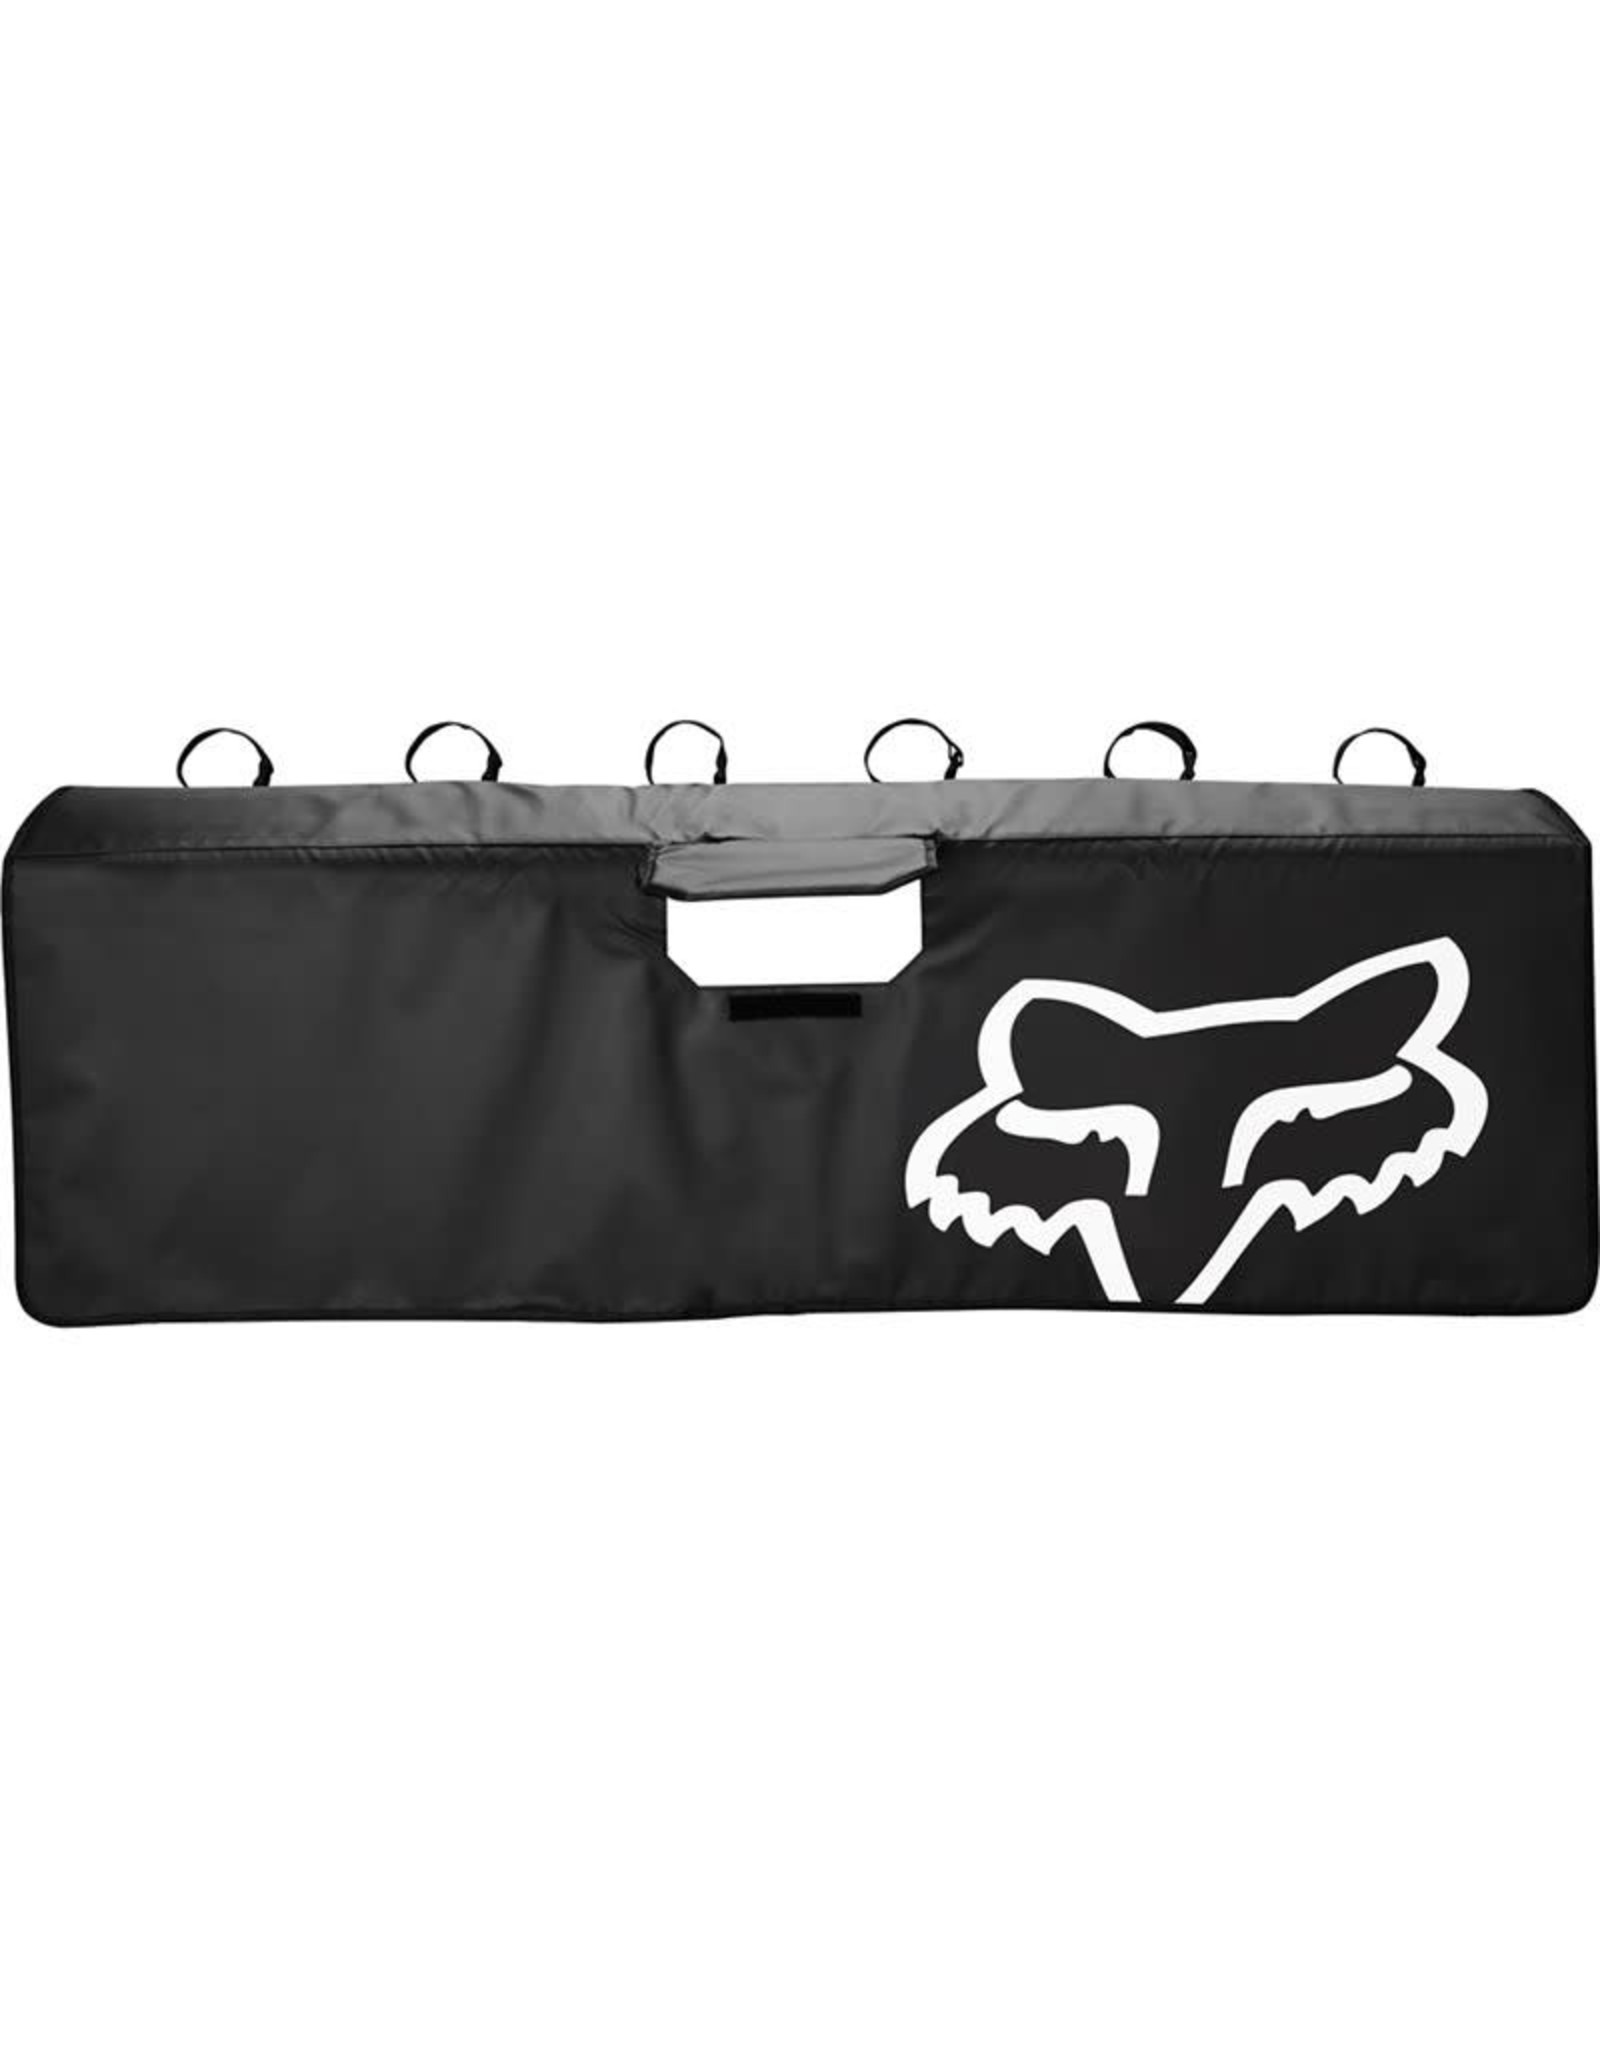 FOX TAILGATE COVER LARGE